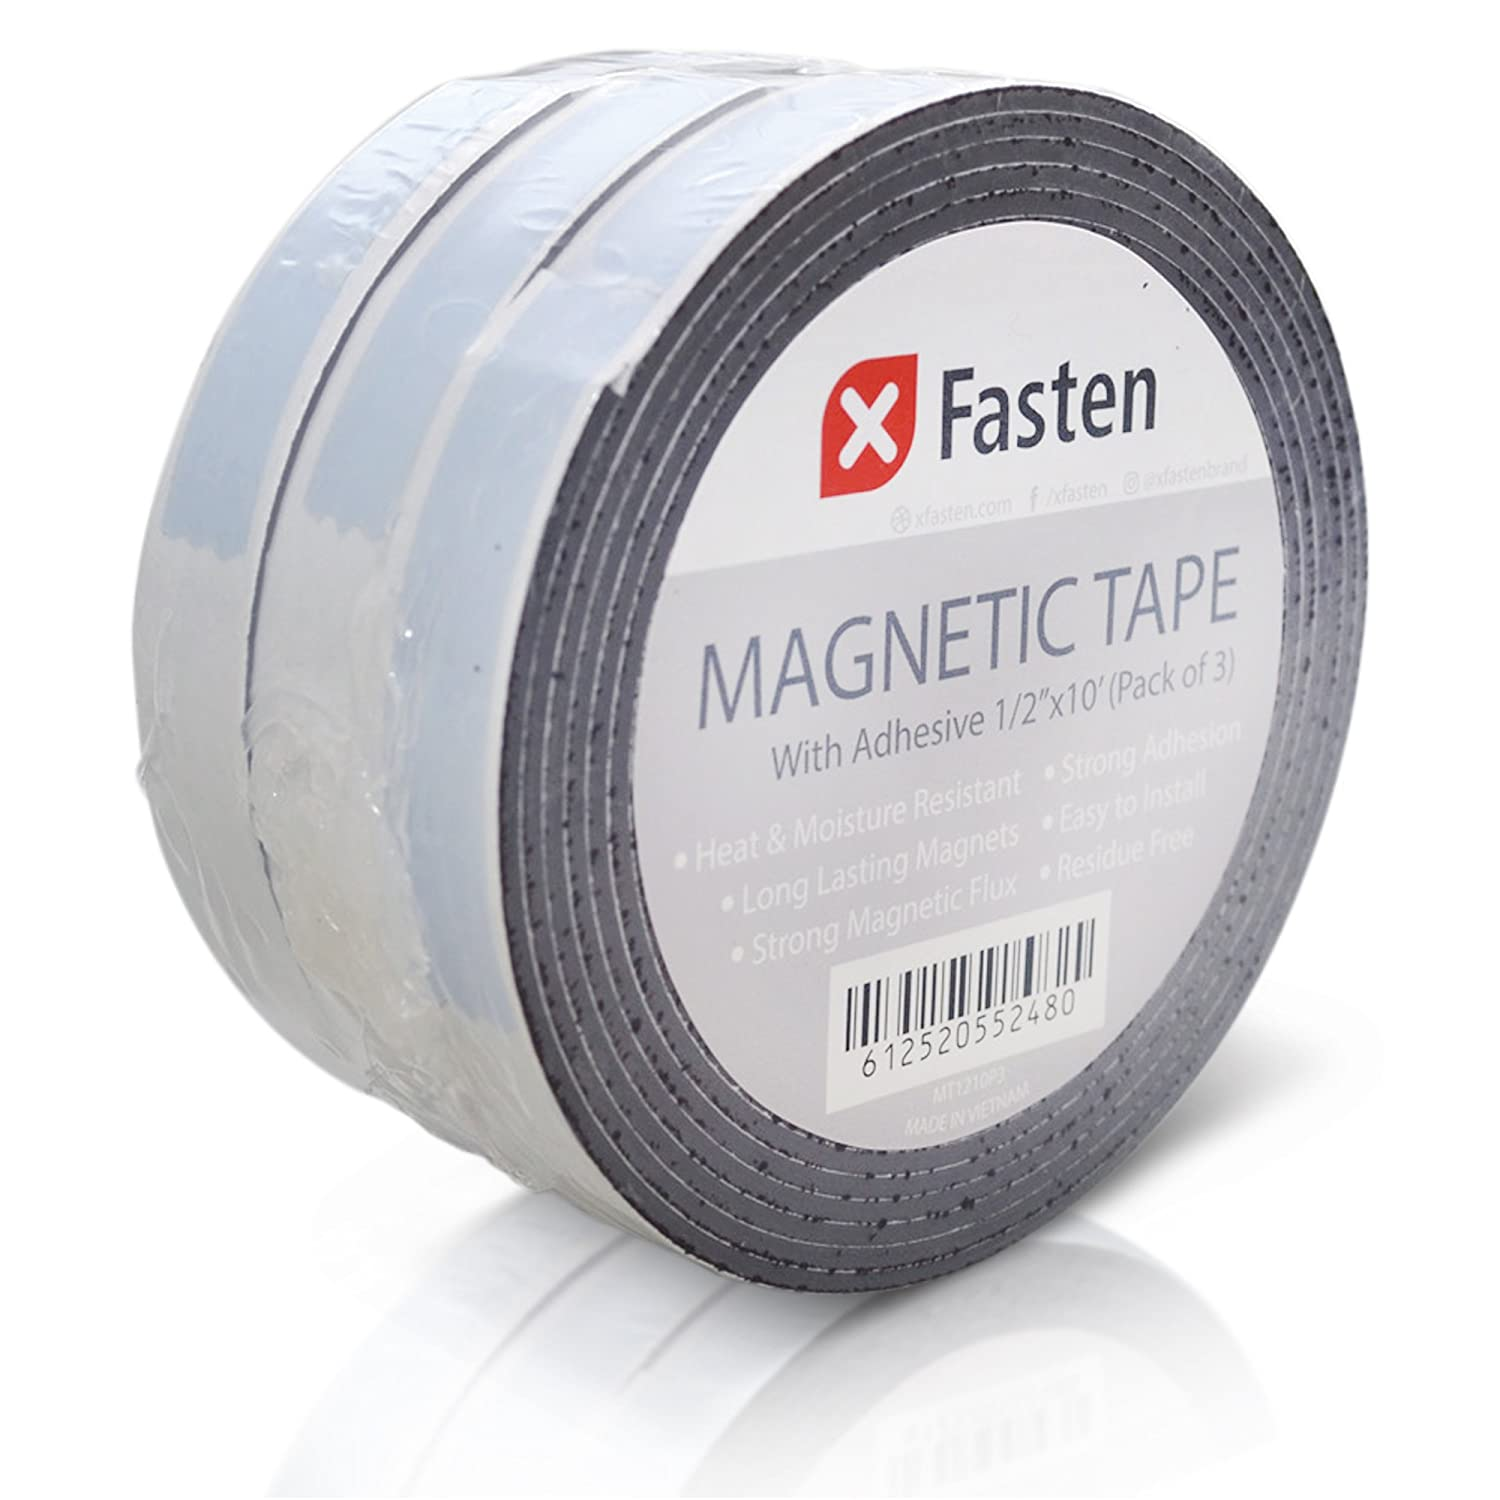 XFasten Flexible Strong Self Adhesive Magnetic Tape Roll, 1/2-Inch x 10-Foot, Pack of 3, Stick on Magnetic Strips with Adhesive Backing MT1210P3